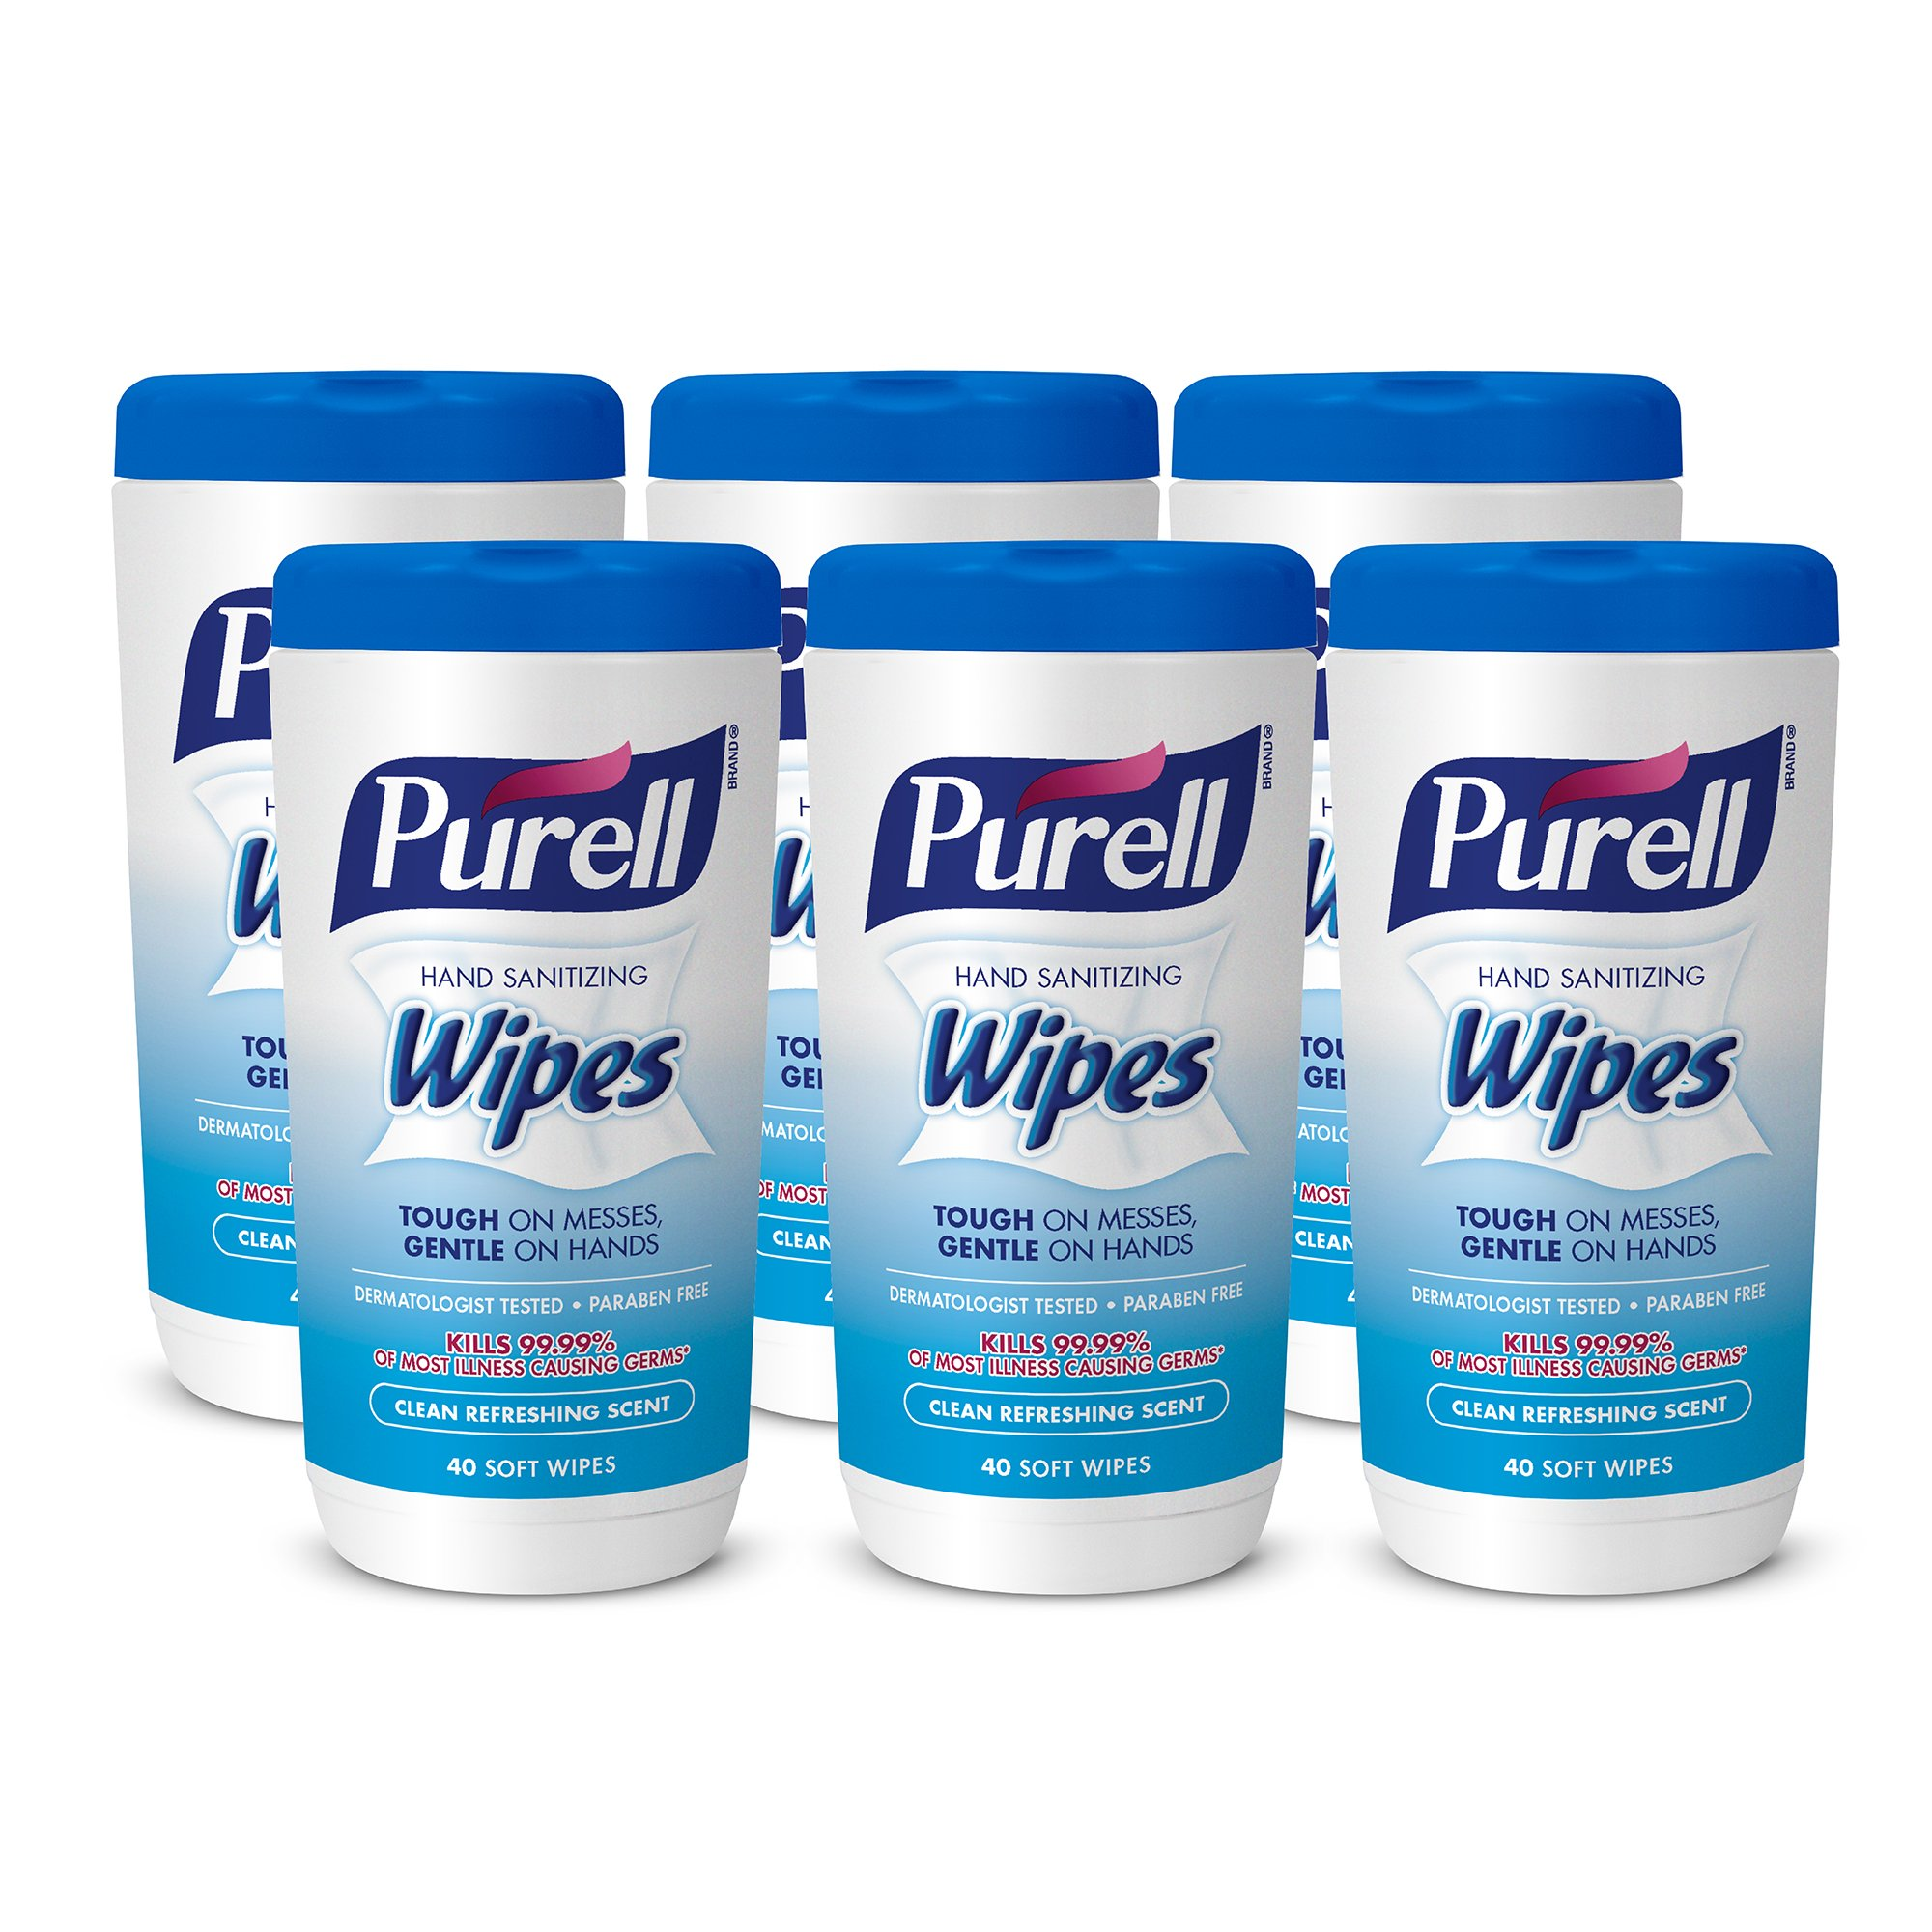 PURELL Hand Sanitizing Wipes, Clean Refreshing Scent, 40 Count Non-Alcohol Sanitizing Wipes Canister (Pack of 6) - 9120-06-CMR by Purell